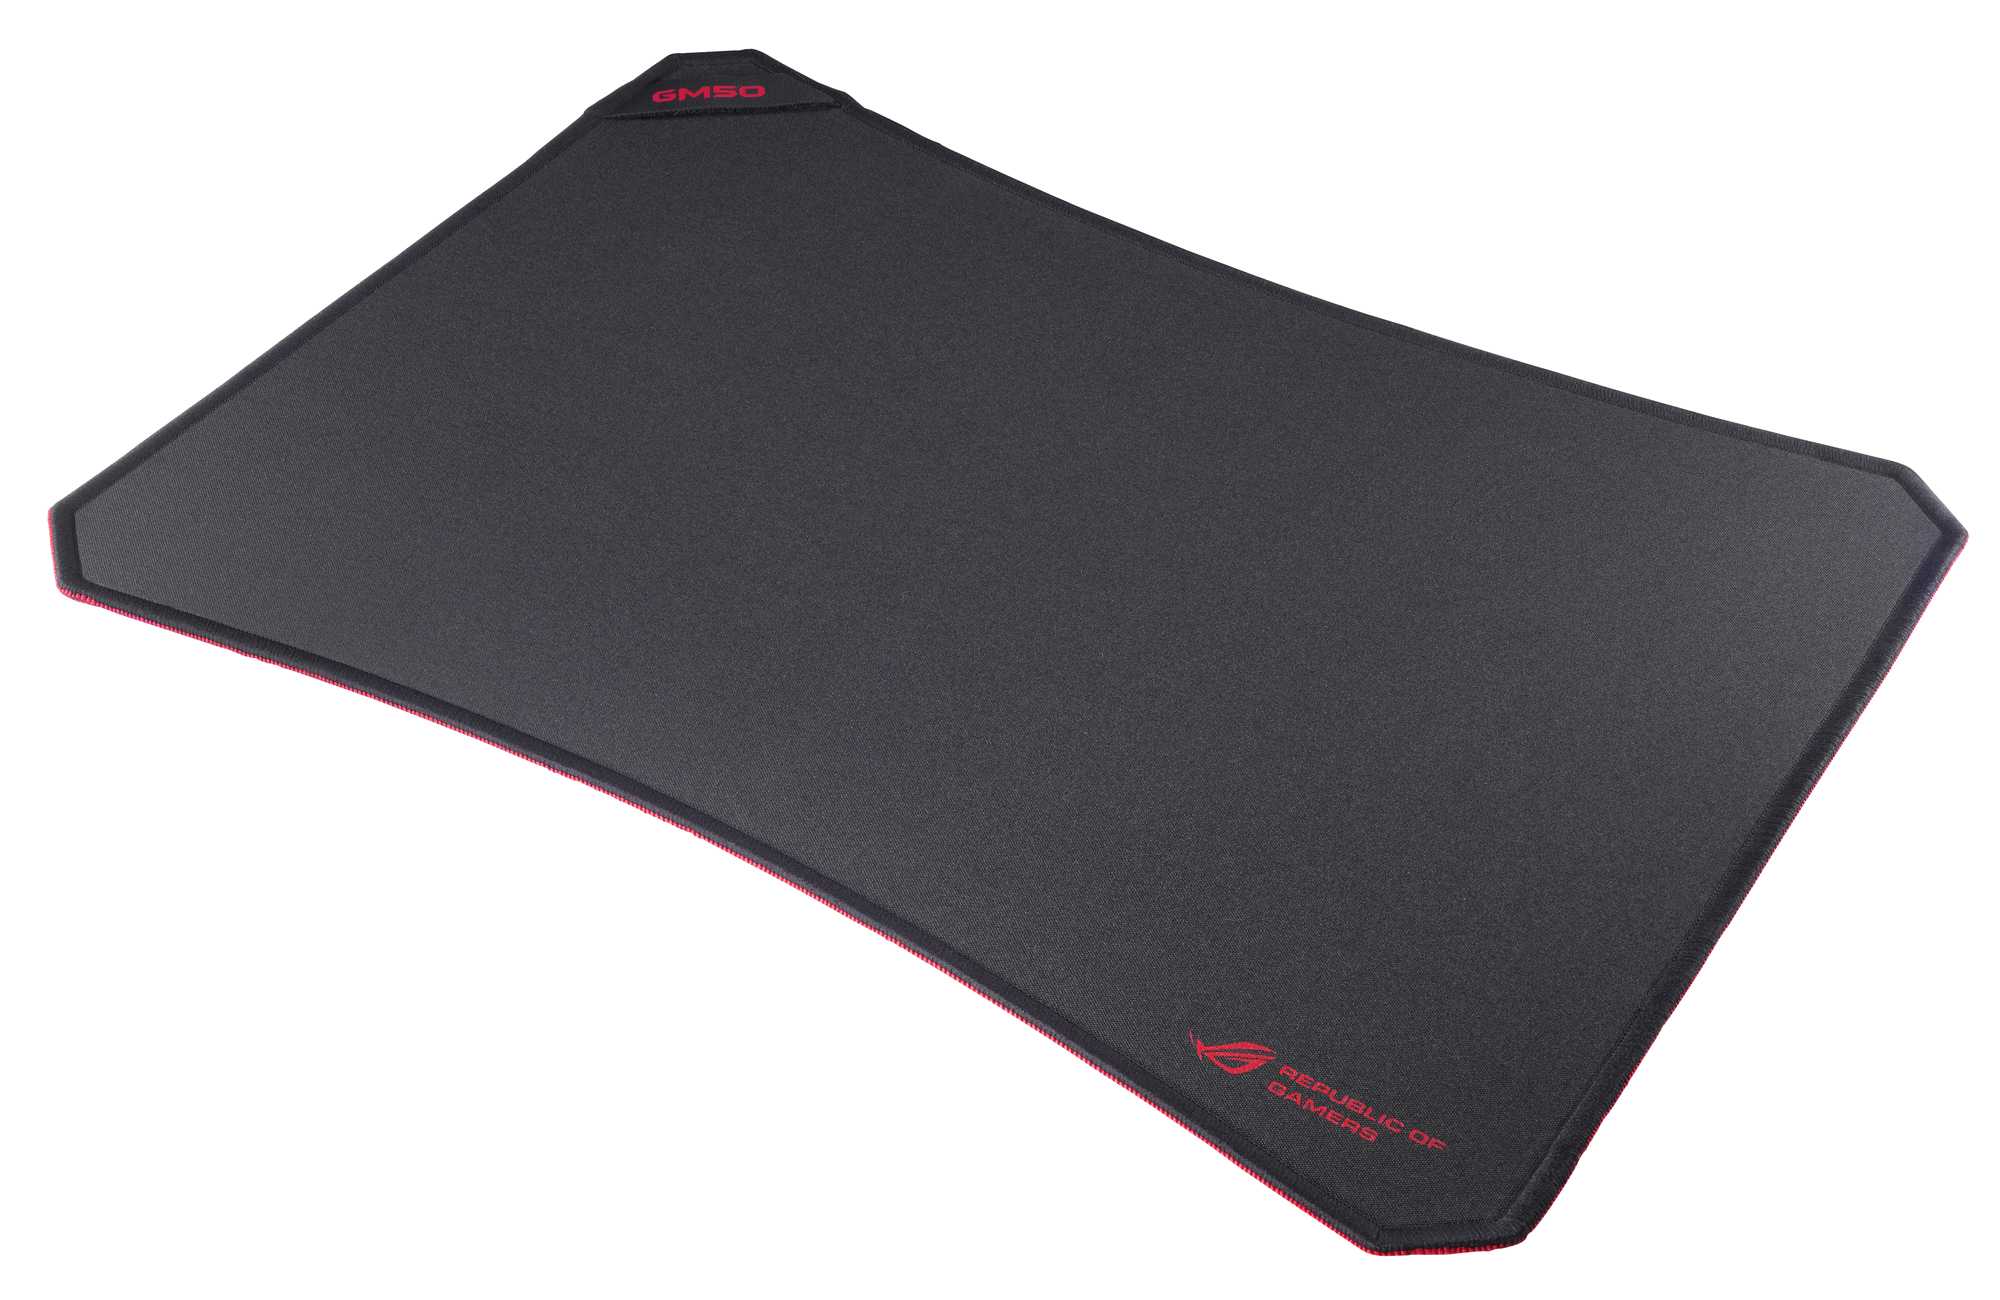 The Gm50 Rog Mouse Pad Republic Of Gamers Rog